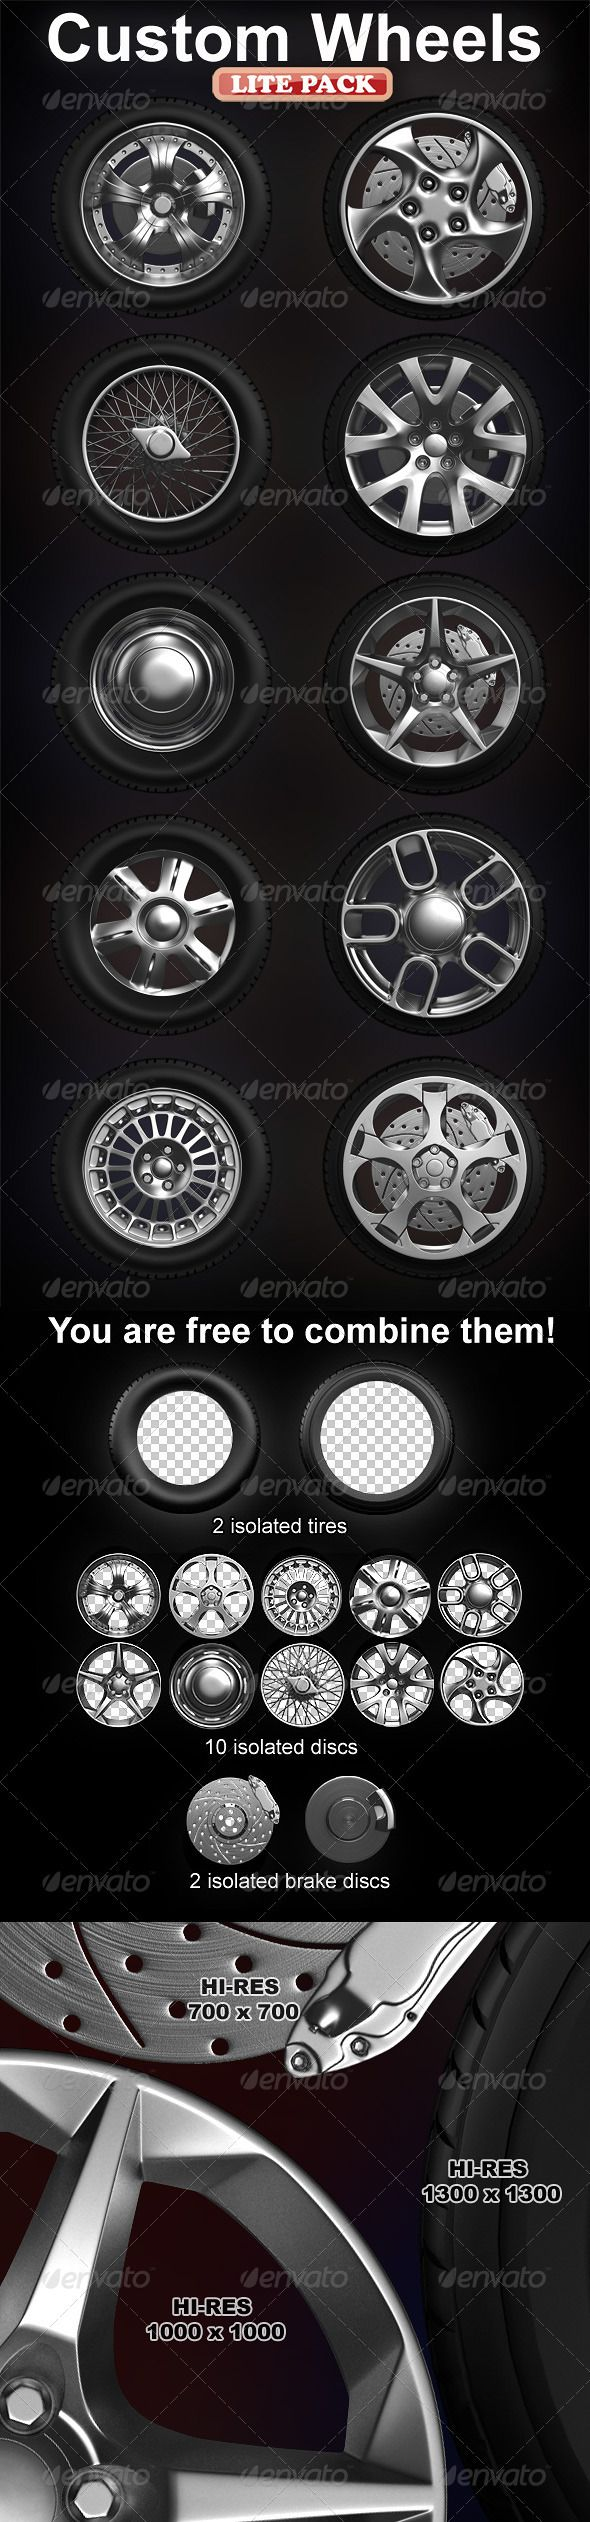 Isolated custom wheels pack (2 tires, 10 discs)